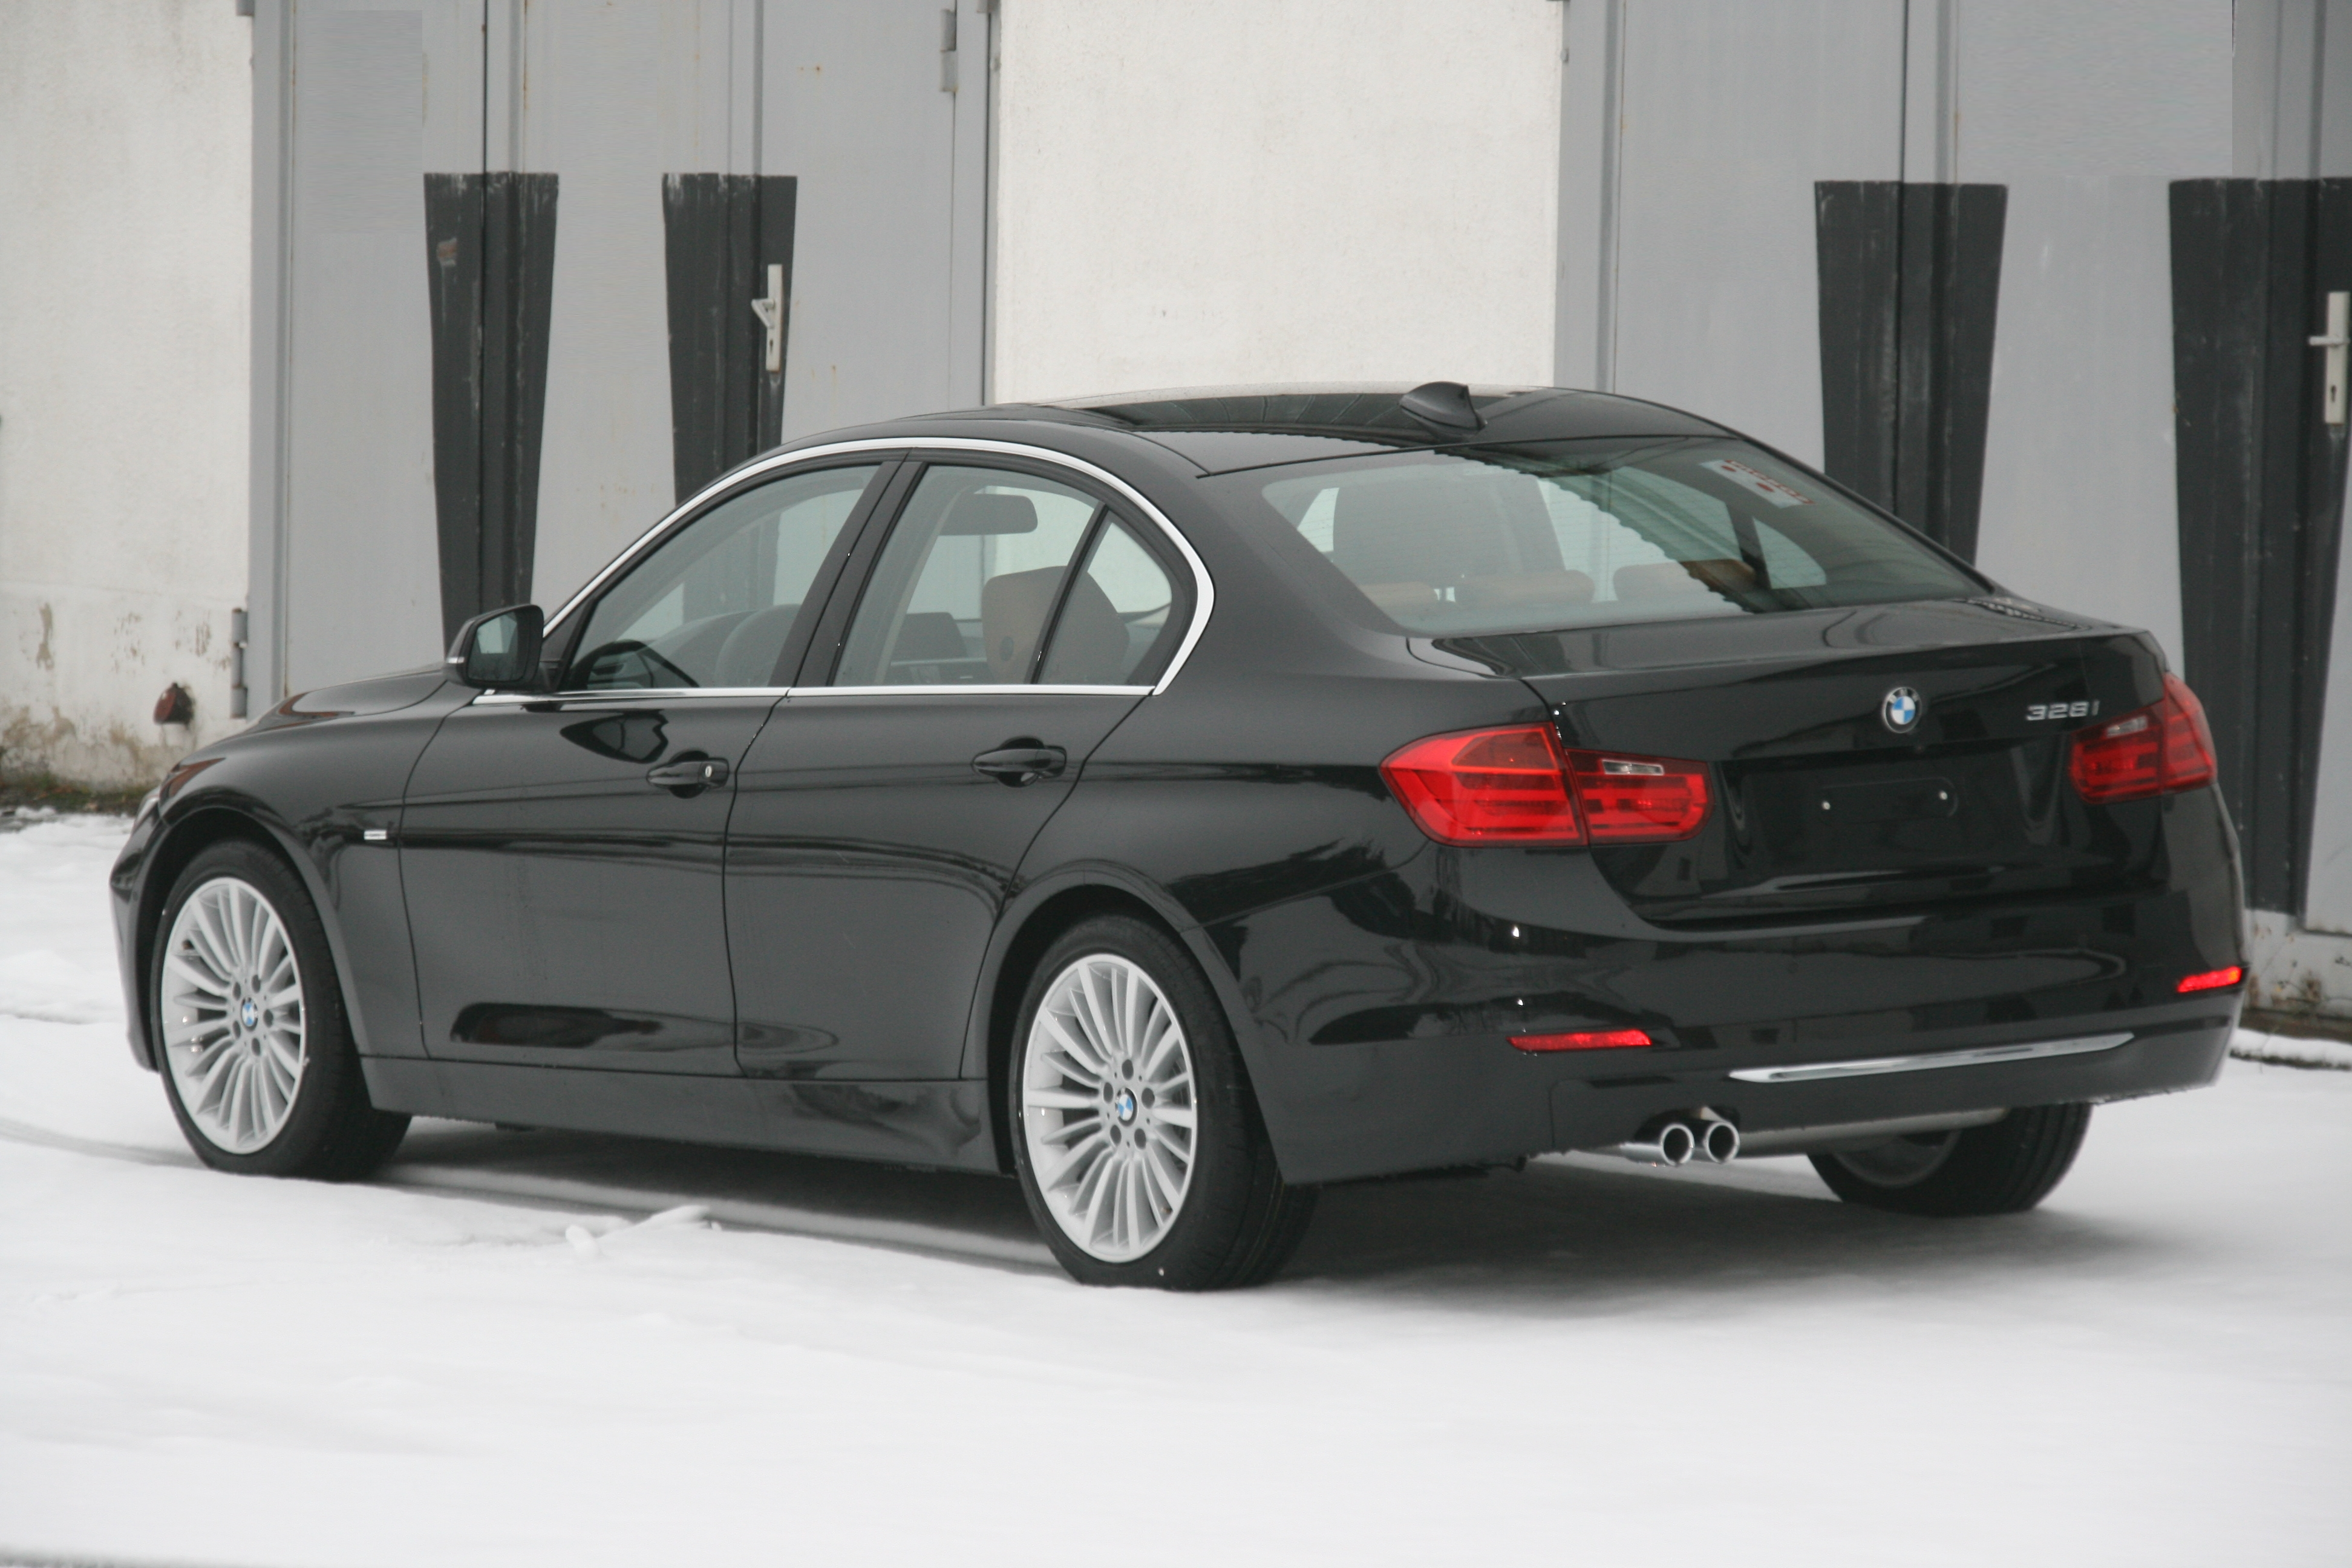 file bmw 328i f30 2012. Black Bedroom Furniture Sets. Home Design Ideas